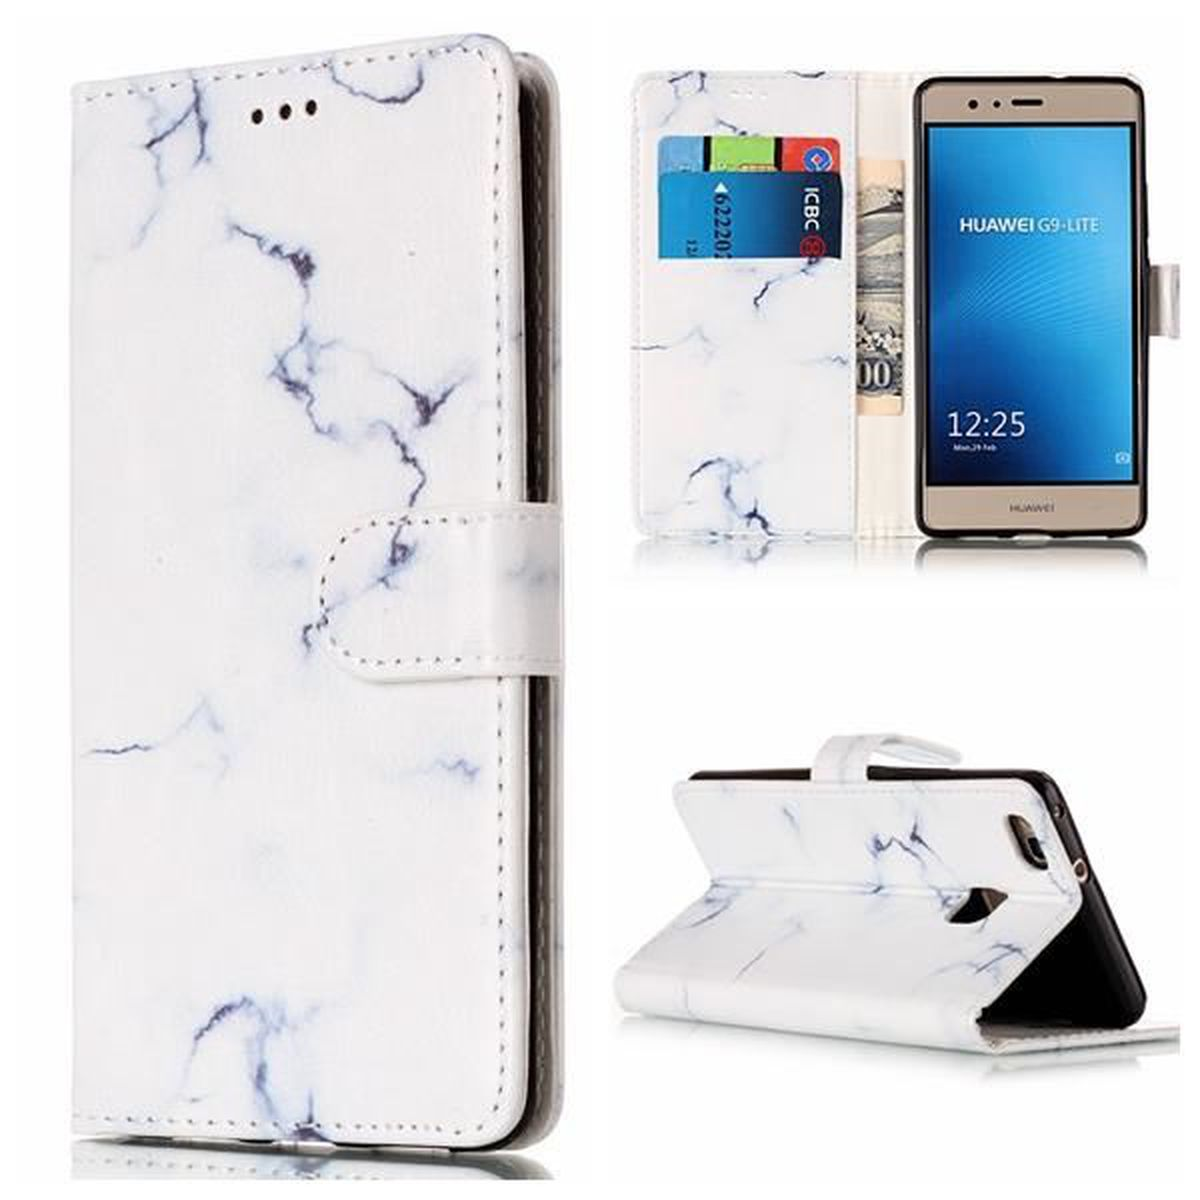 coque huawei p9 lite map